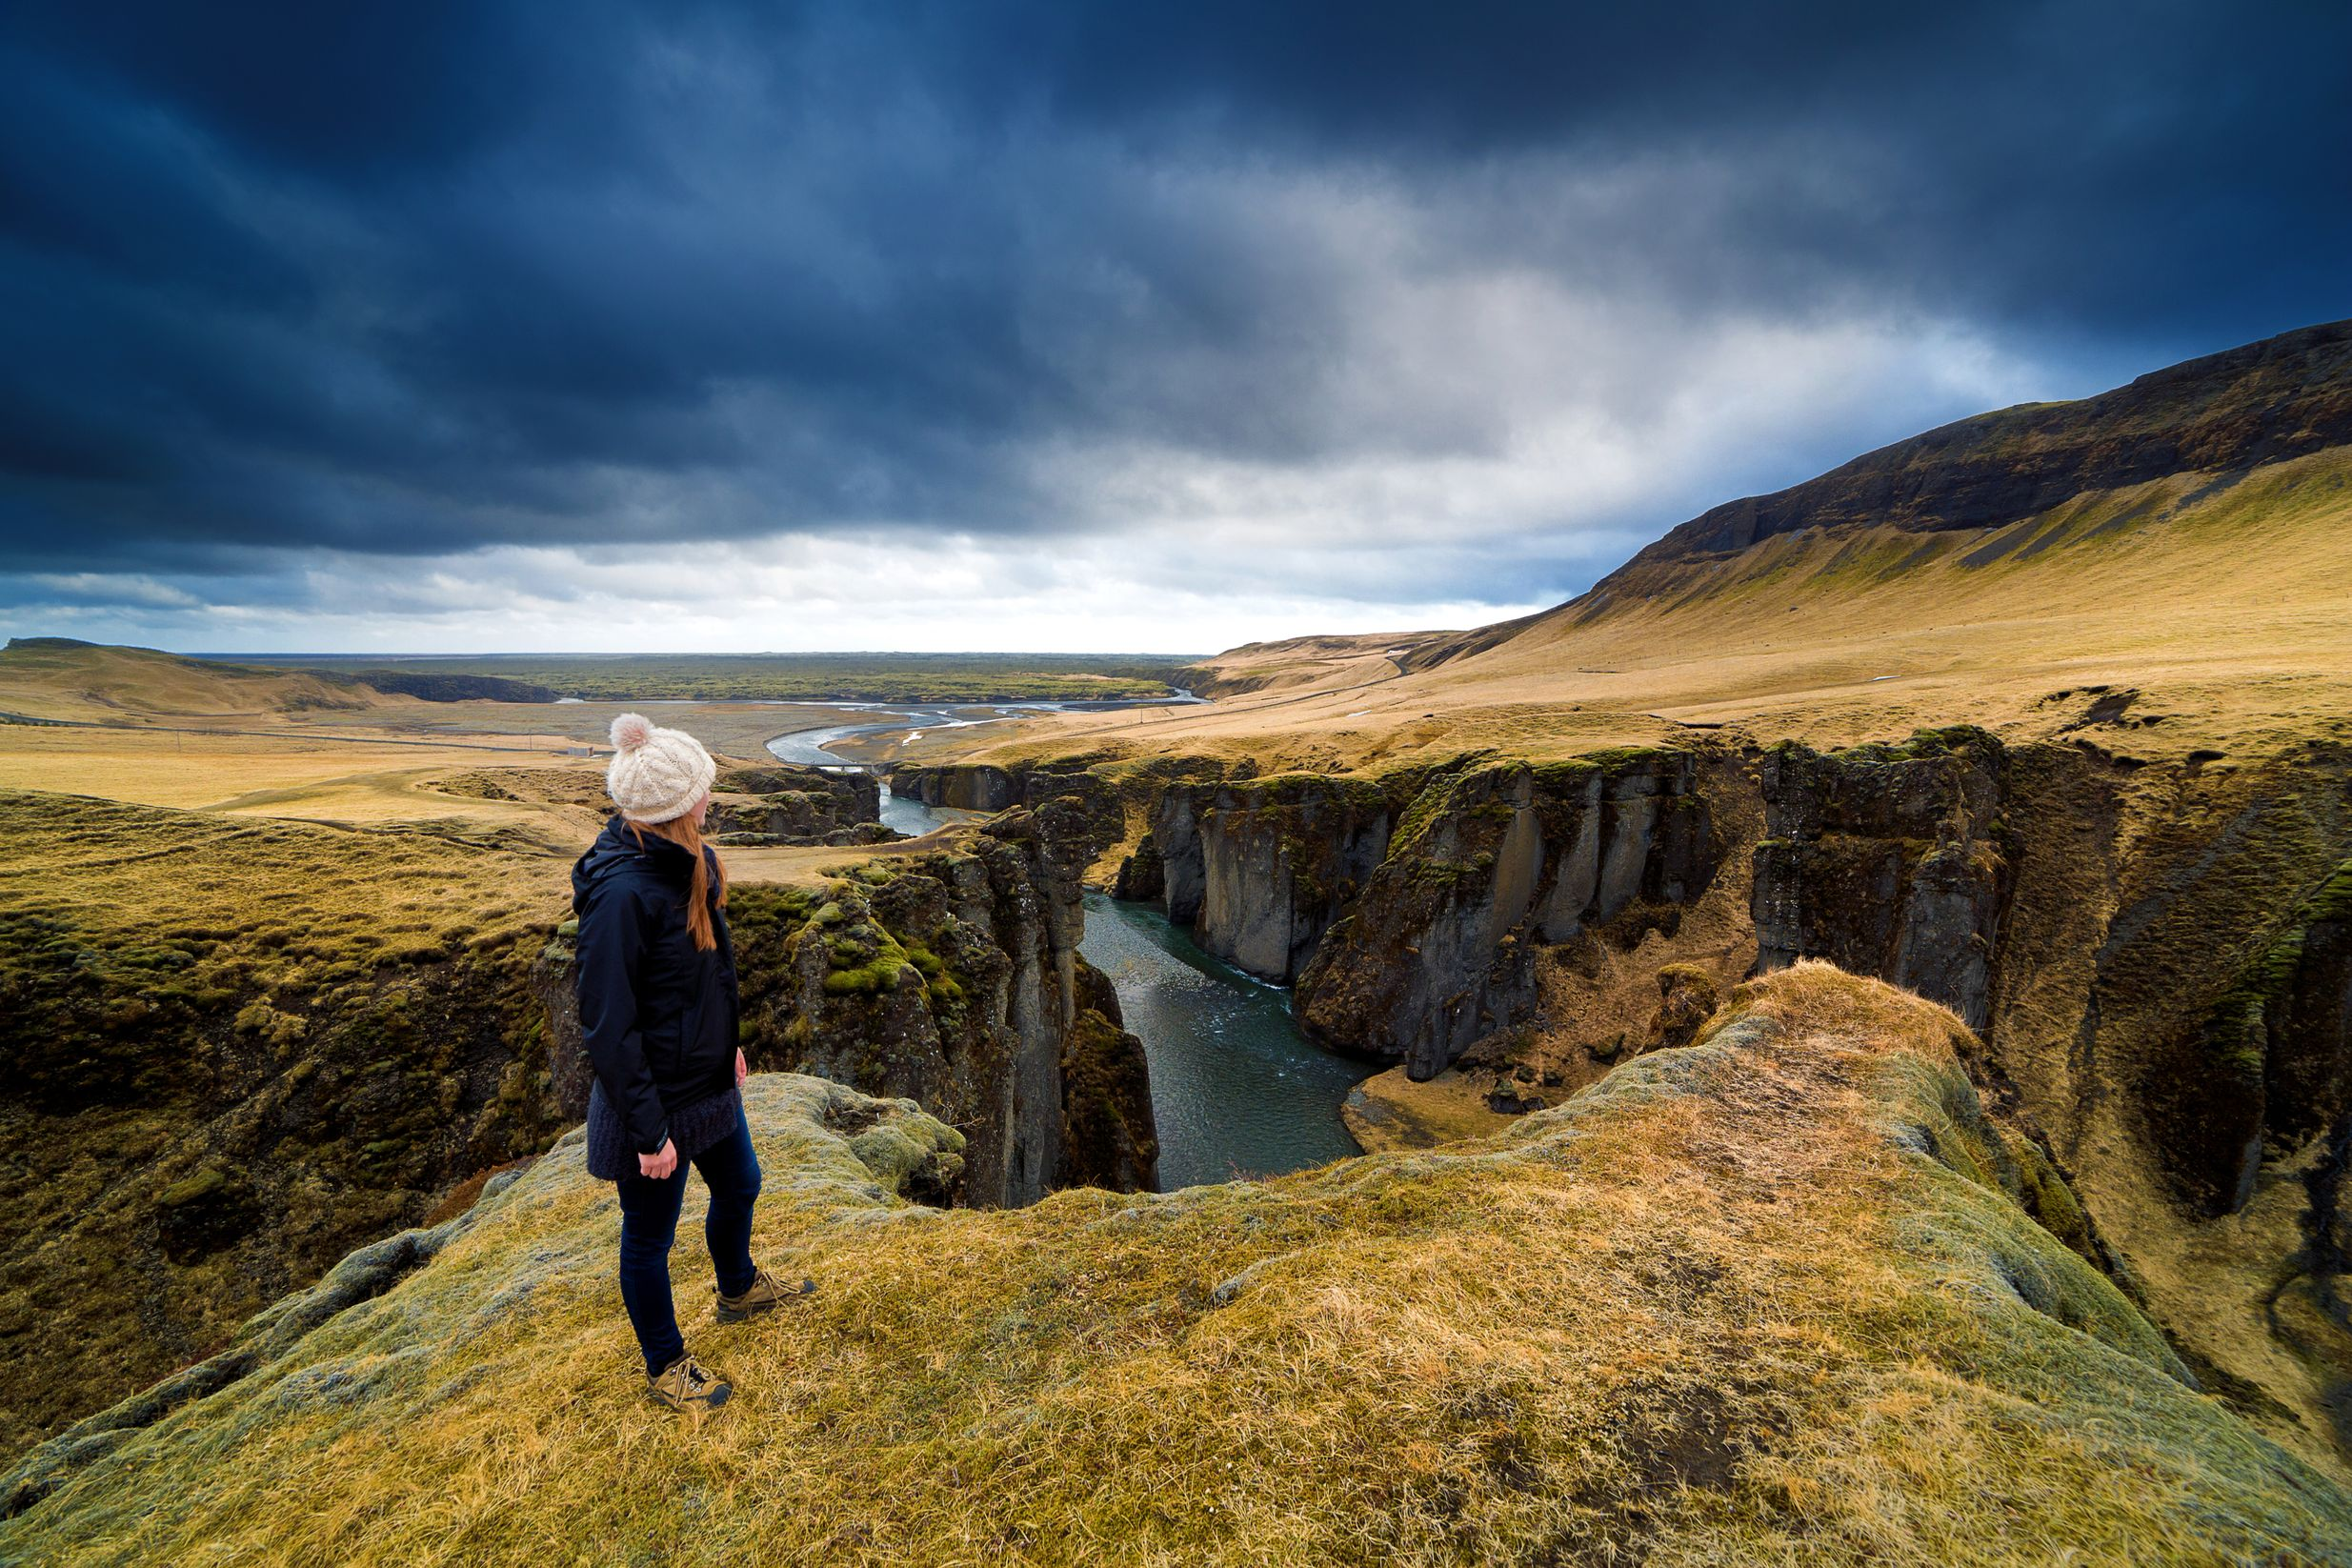 Young woman wearing black coat and white hat looks out on dramatic landscape of Fjadrargljufur canyon under dramatic stormy skies.